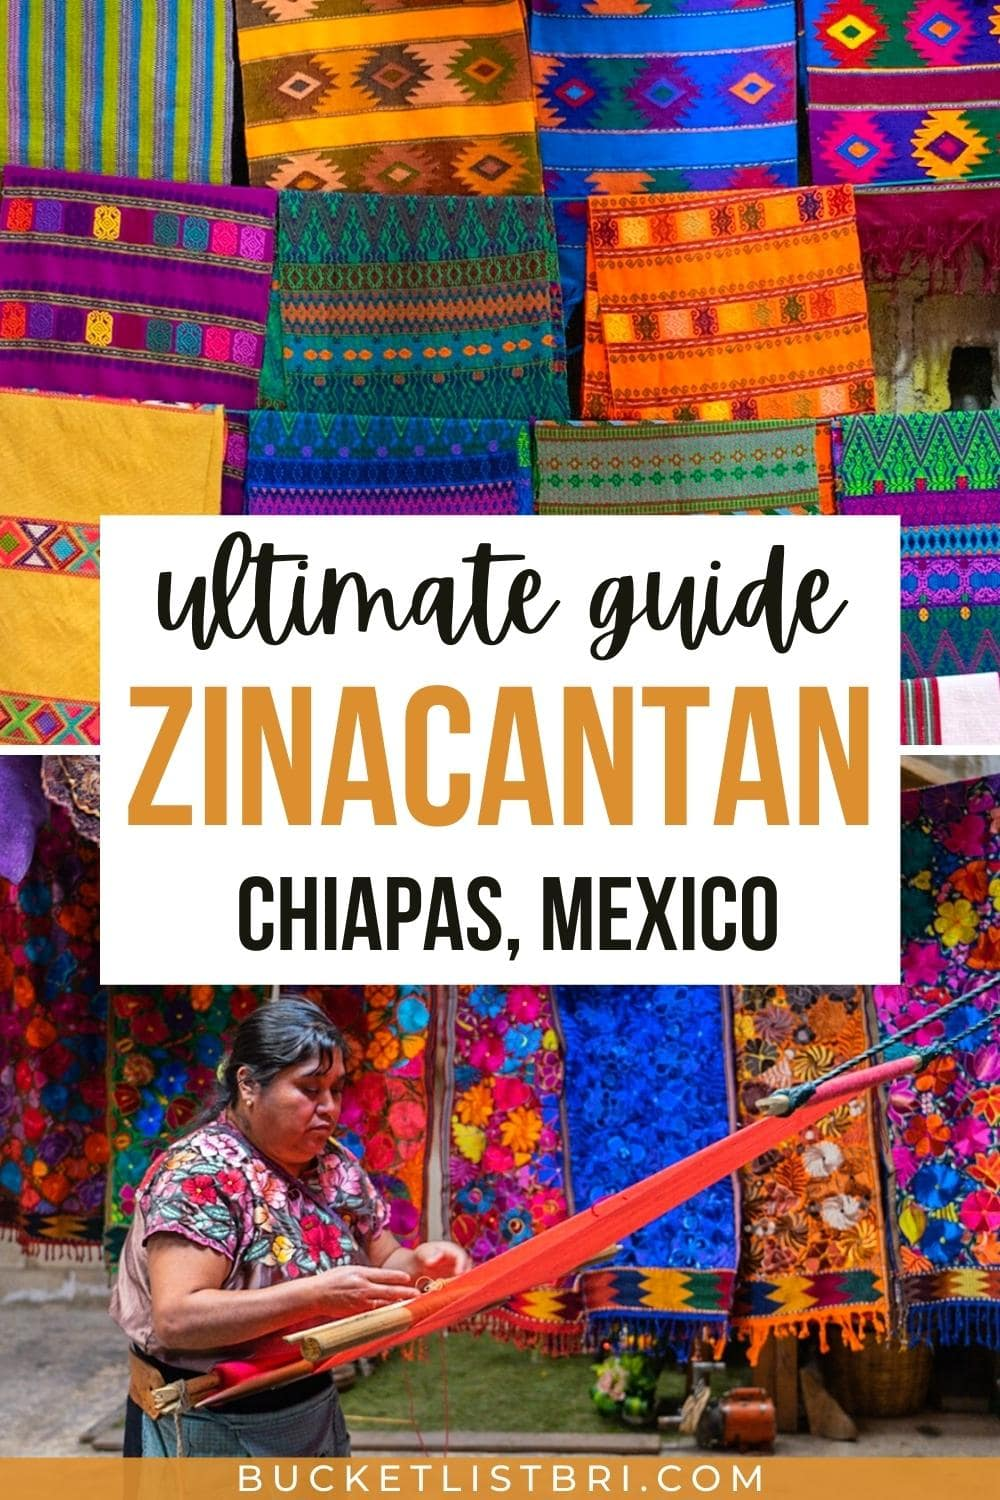 zinacantan mexico pinterest pin with text overlay